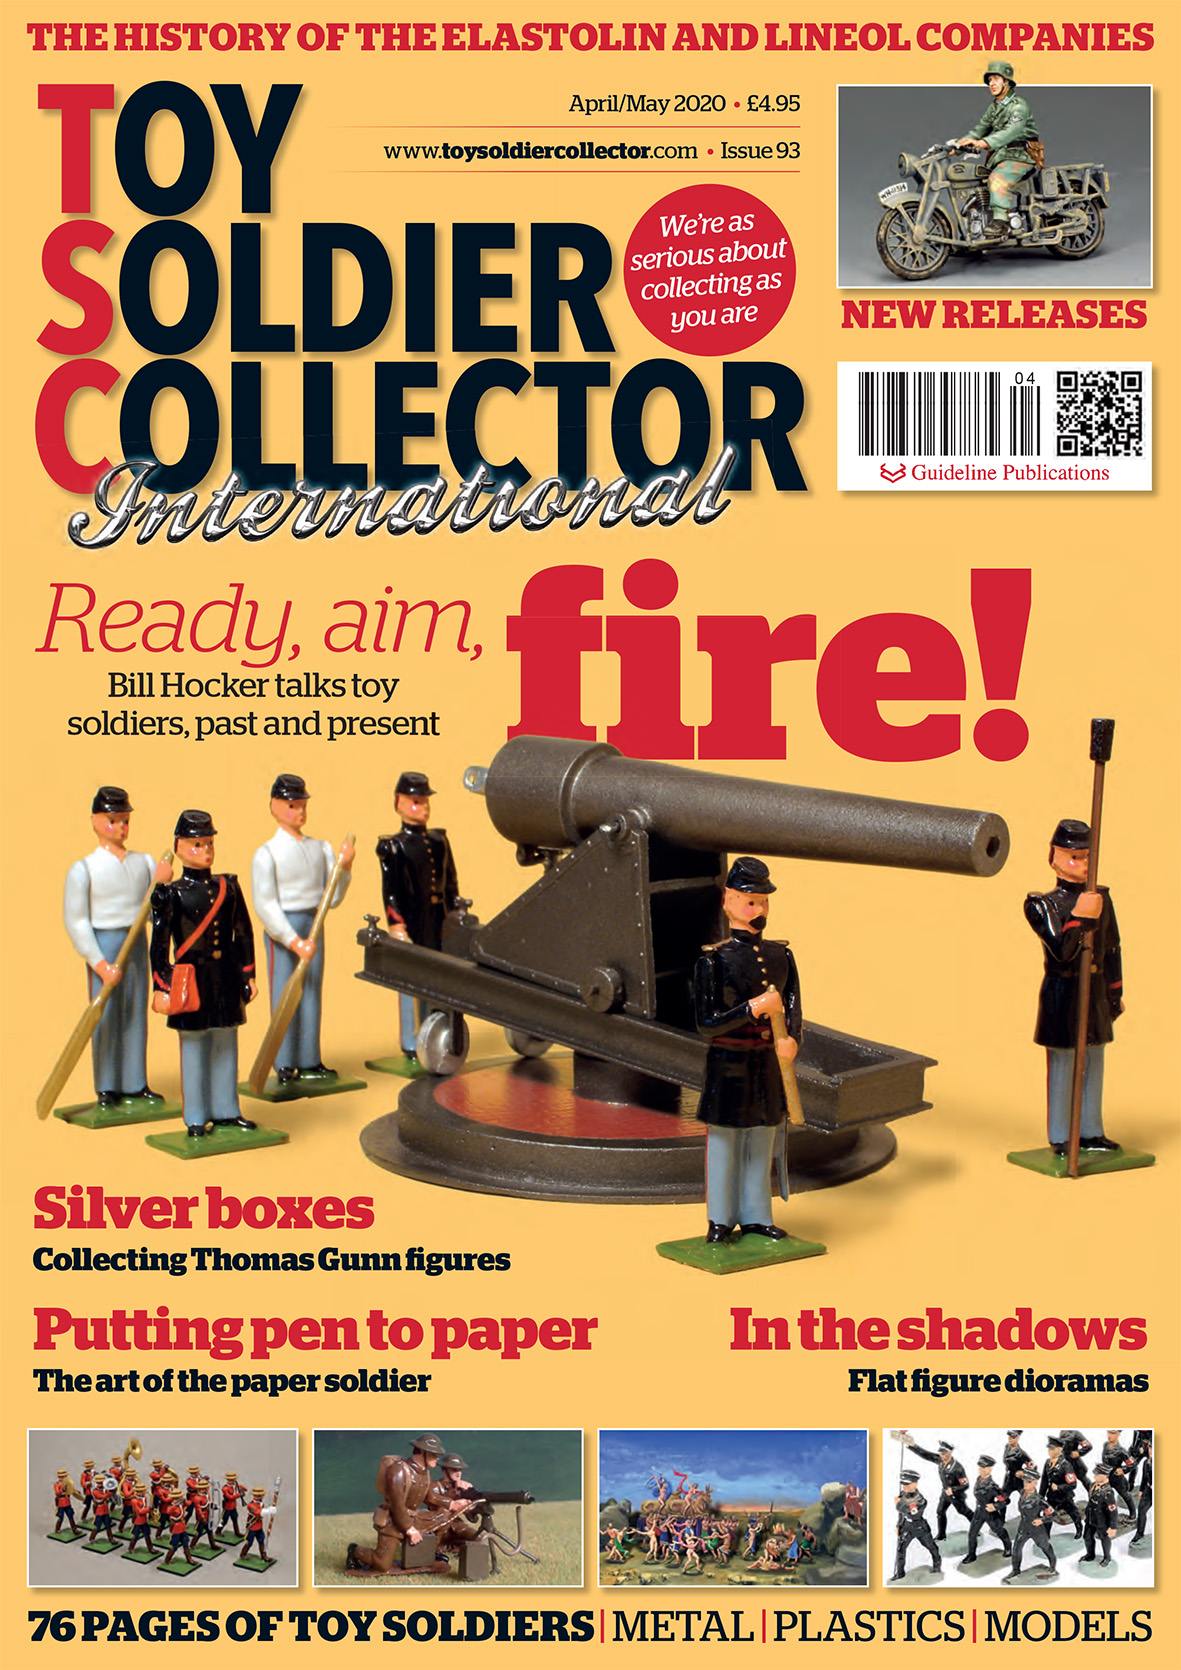 Guideline Publications Toy Soldier Collector #93 April/May 2020 Issue 93